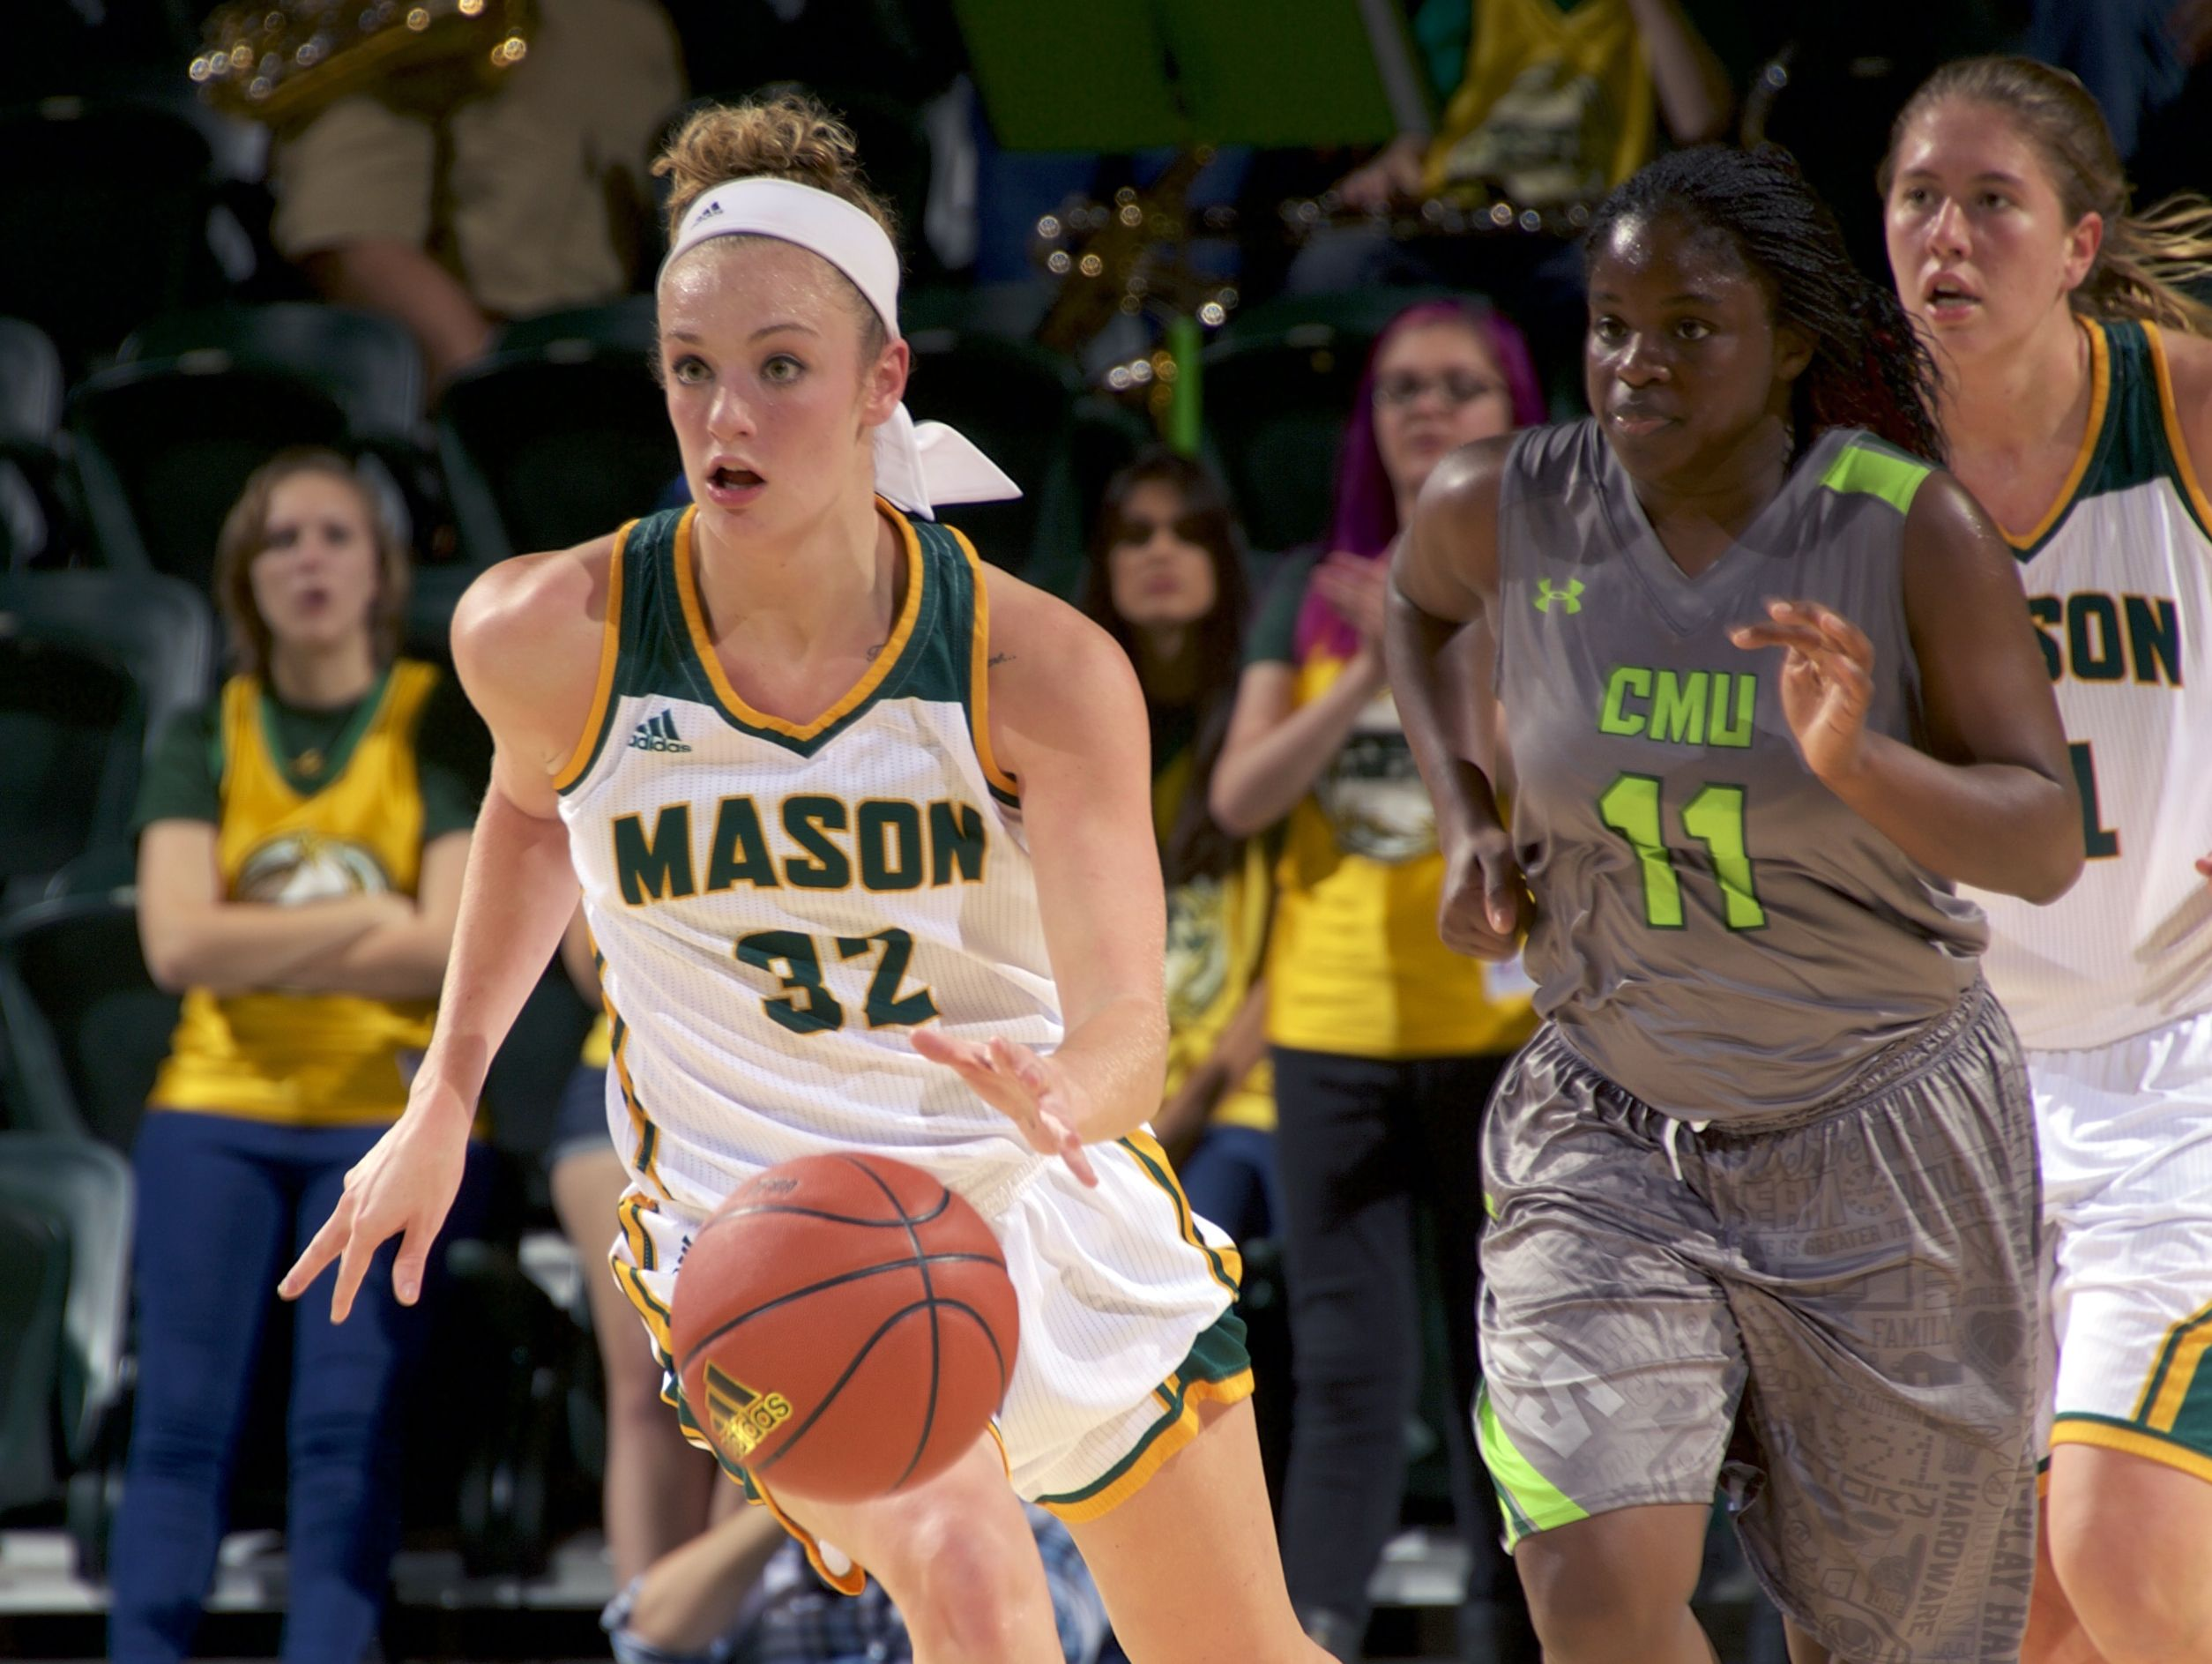 George Mason's Tayler Dodson, a Spotswood High School grad, said players need to make sure a basketball travel team's style of play fits your style and that they're going to help you develop.